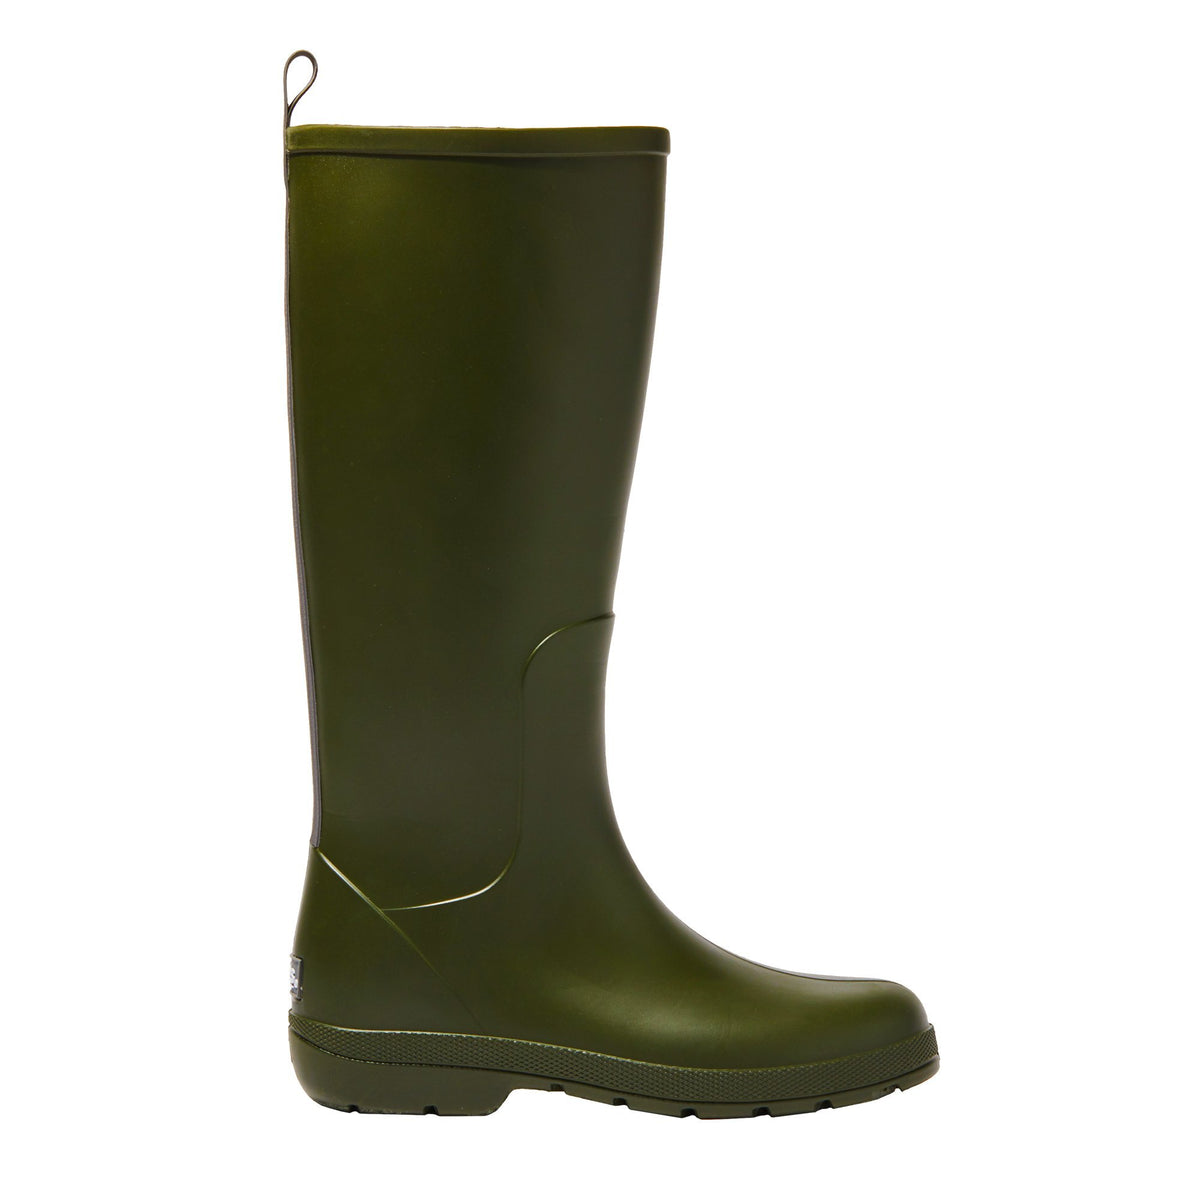 Cirrus™ Women's Claire Tall Rain Boots in Loden Profile